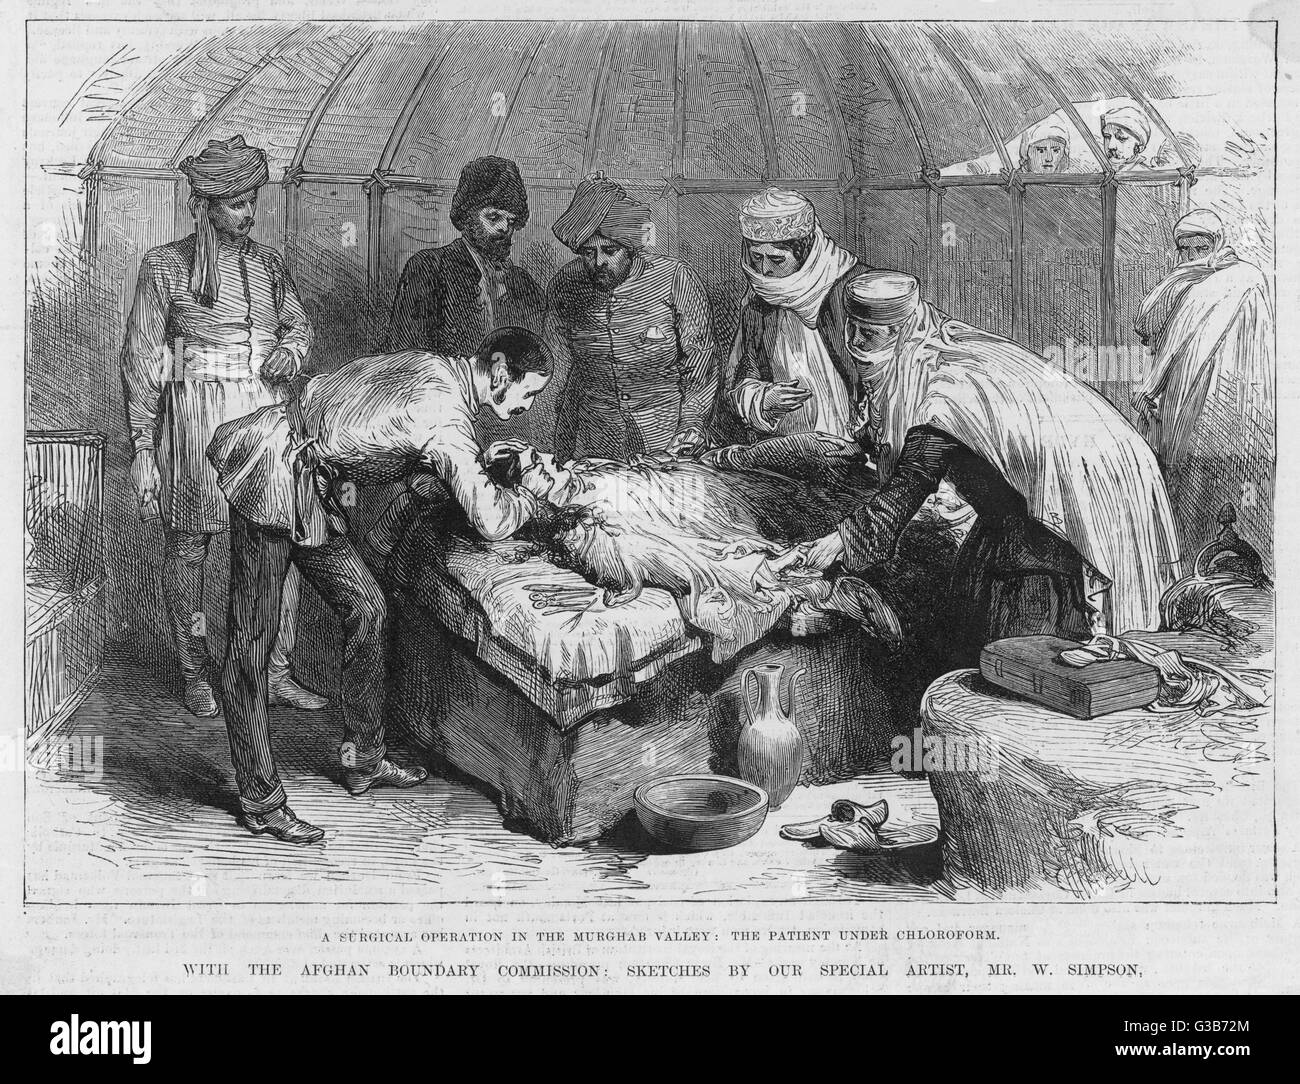 A surgical operation in the  Murghab valley; the patient is  under chloroform        Date: 1885 - Stock Image